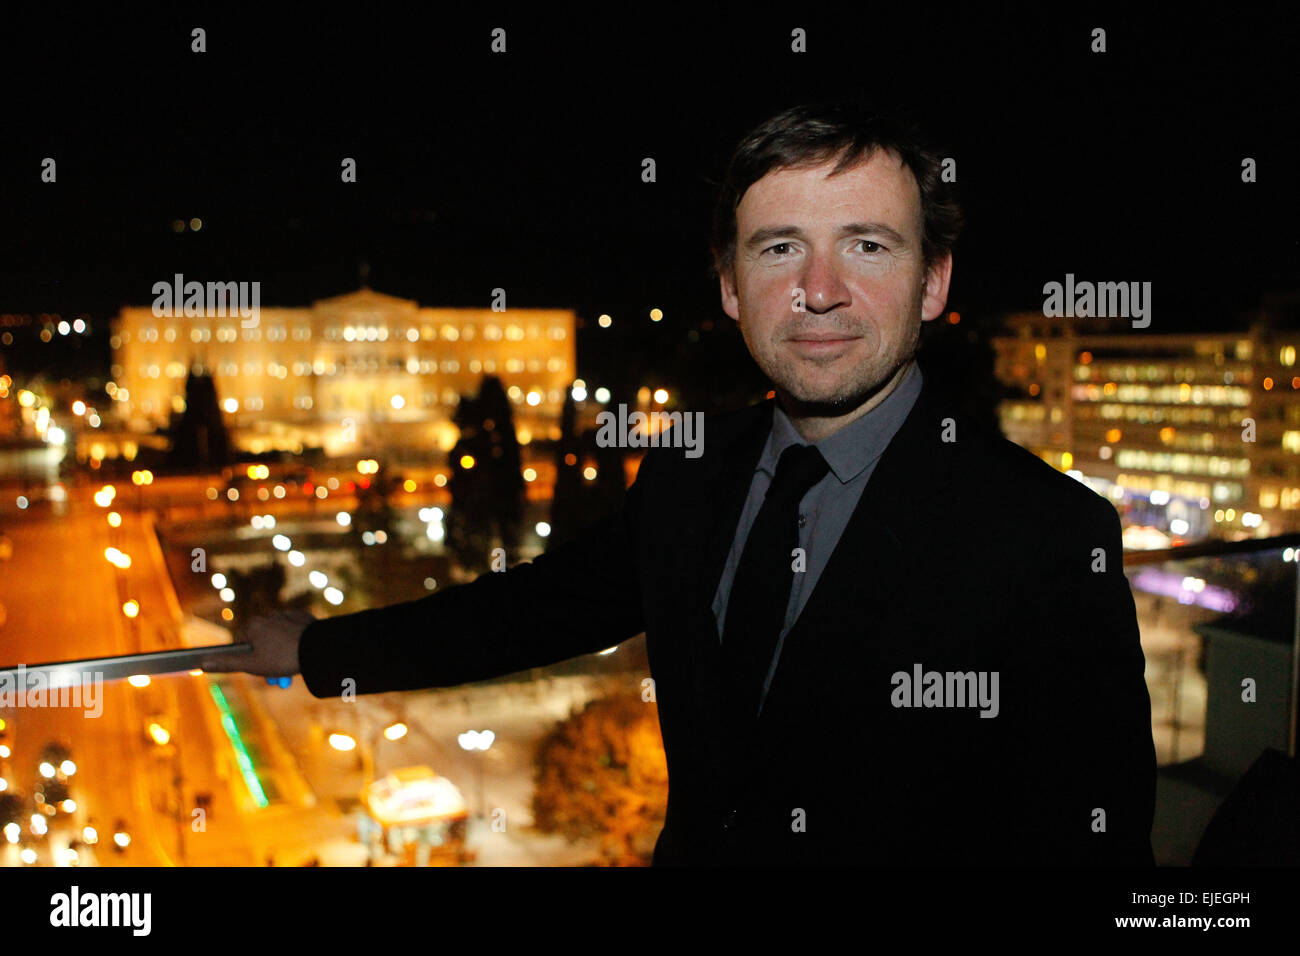 Author and screenwriter David Nicholls presents his new book 'Us' in Athens Greece. - Stock Image